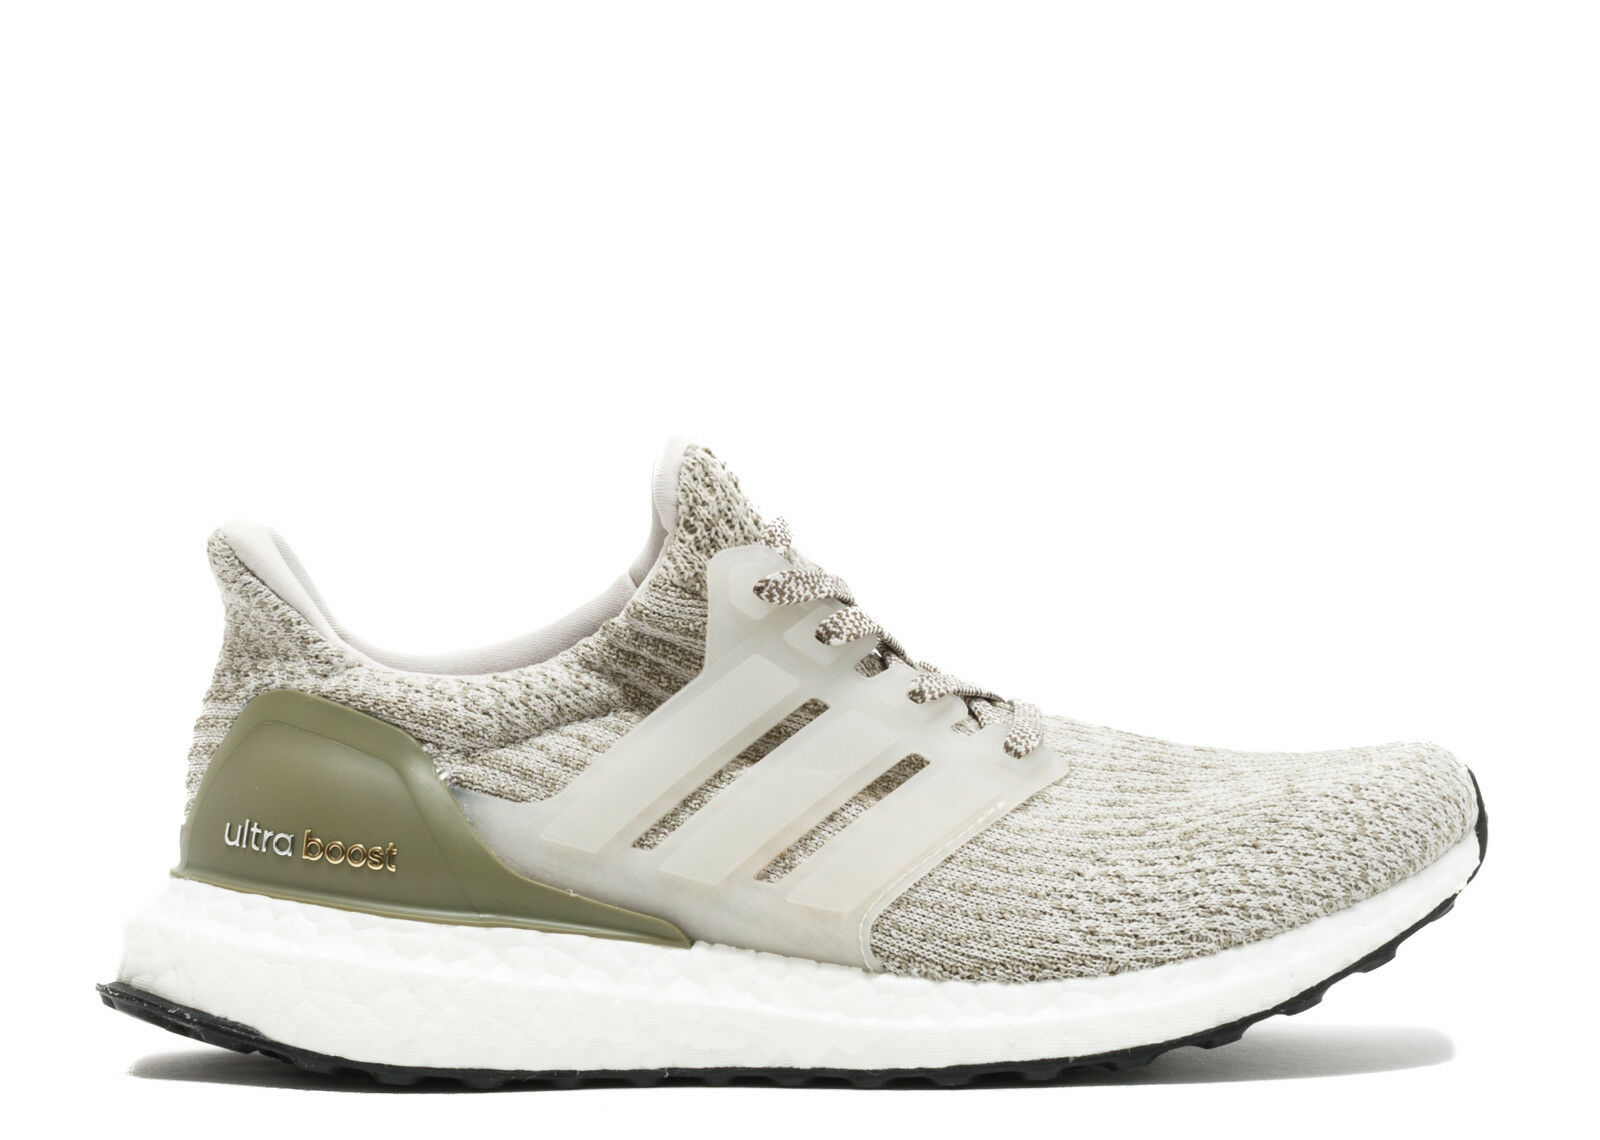 Adidas Ultra Boost 3.0 size 11.5 Pearl Grey/White BA8847 Olive trace cargo